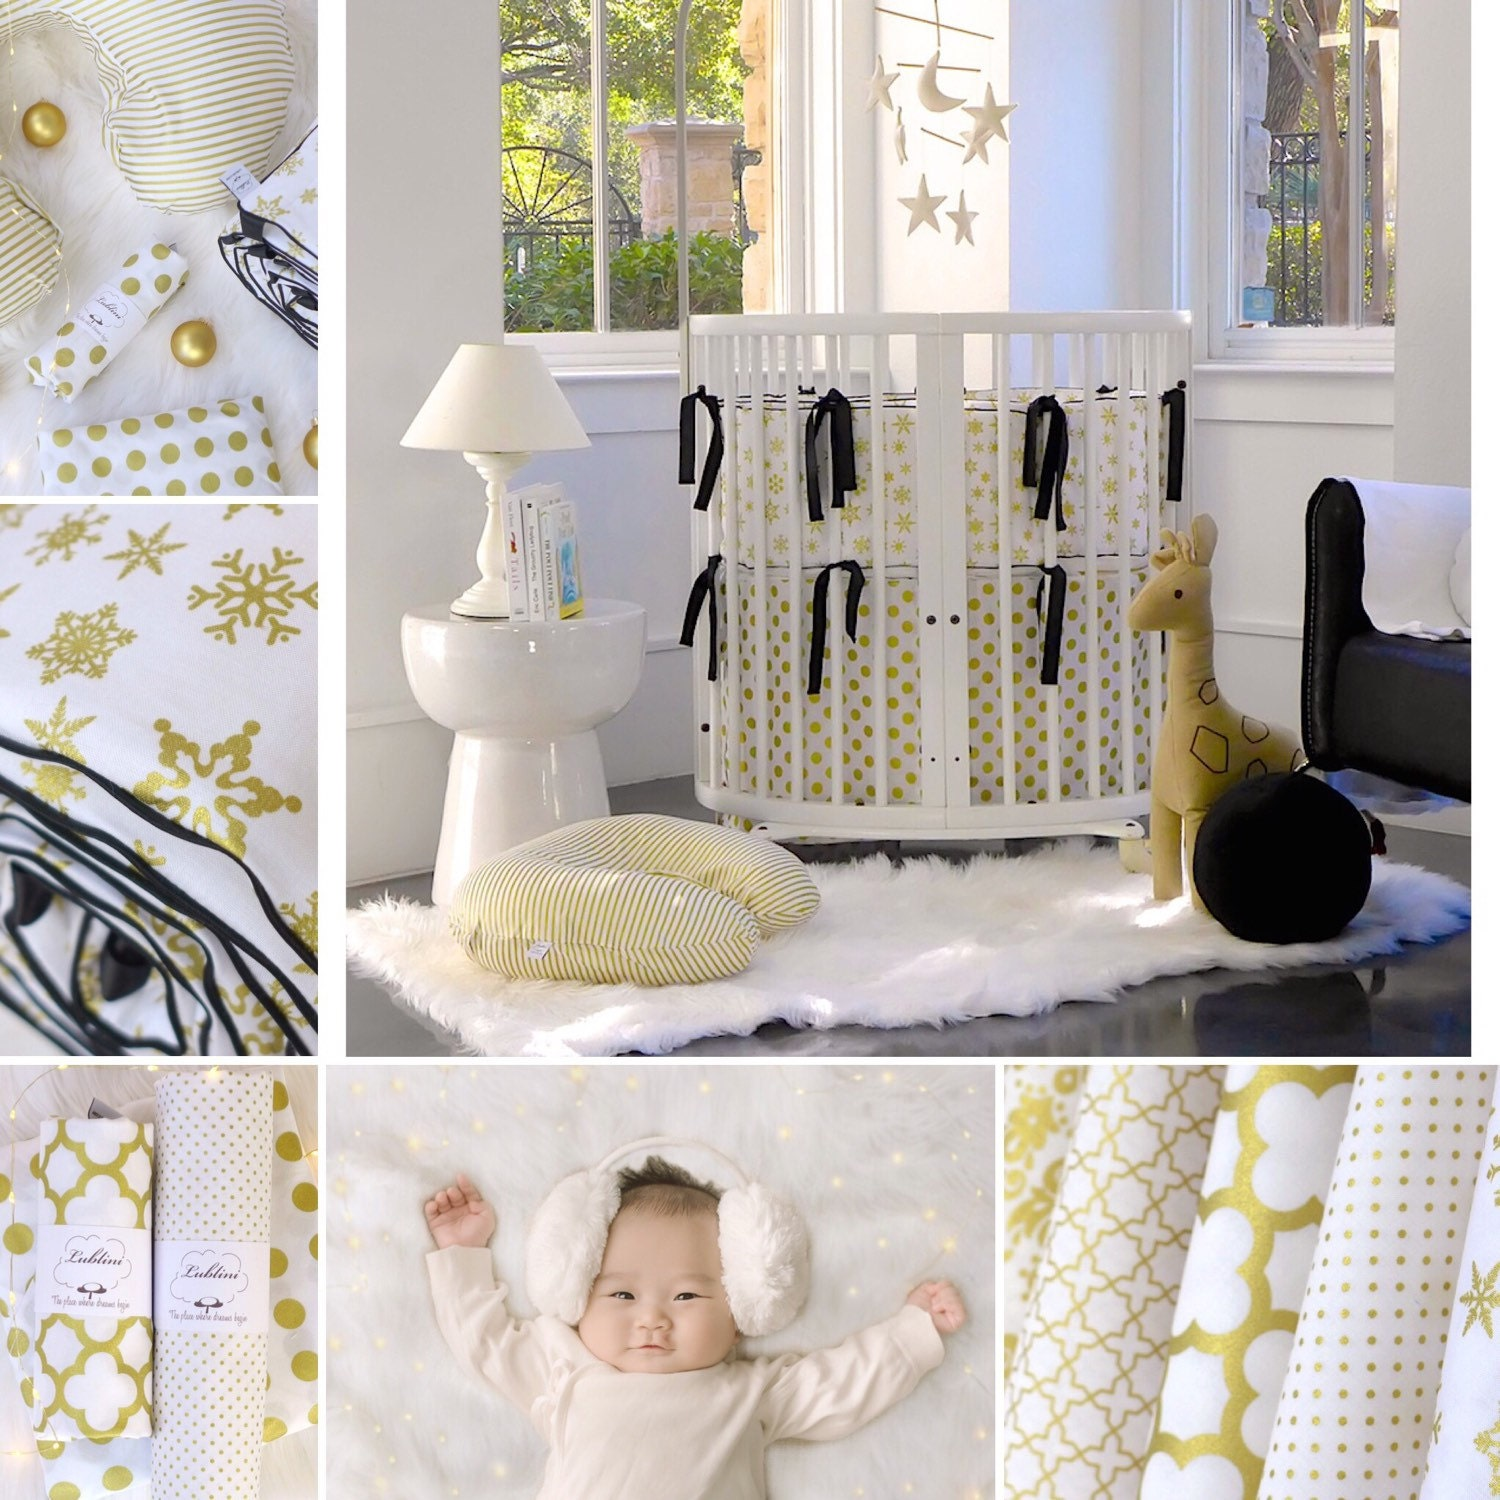 baby bedding  stokke bedding  gold collection  ready to - baby bedding  stokke bedding  gold collection  ready to ship in just weeks